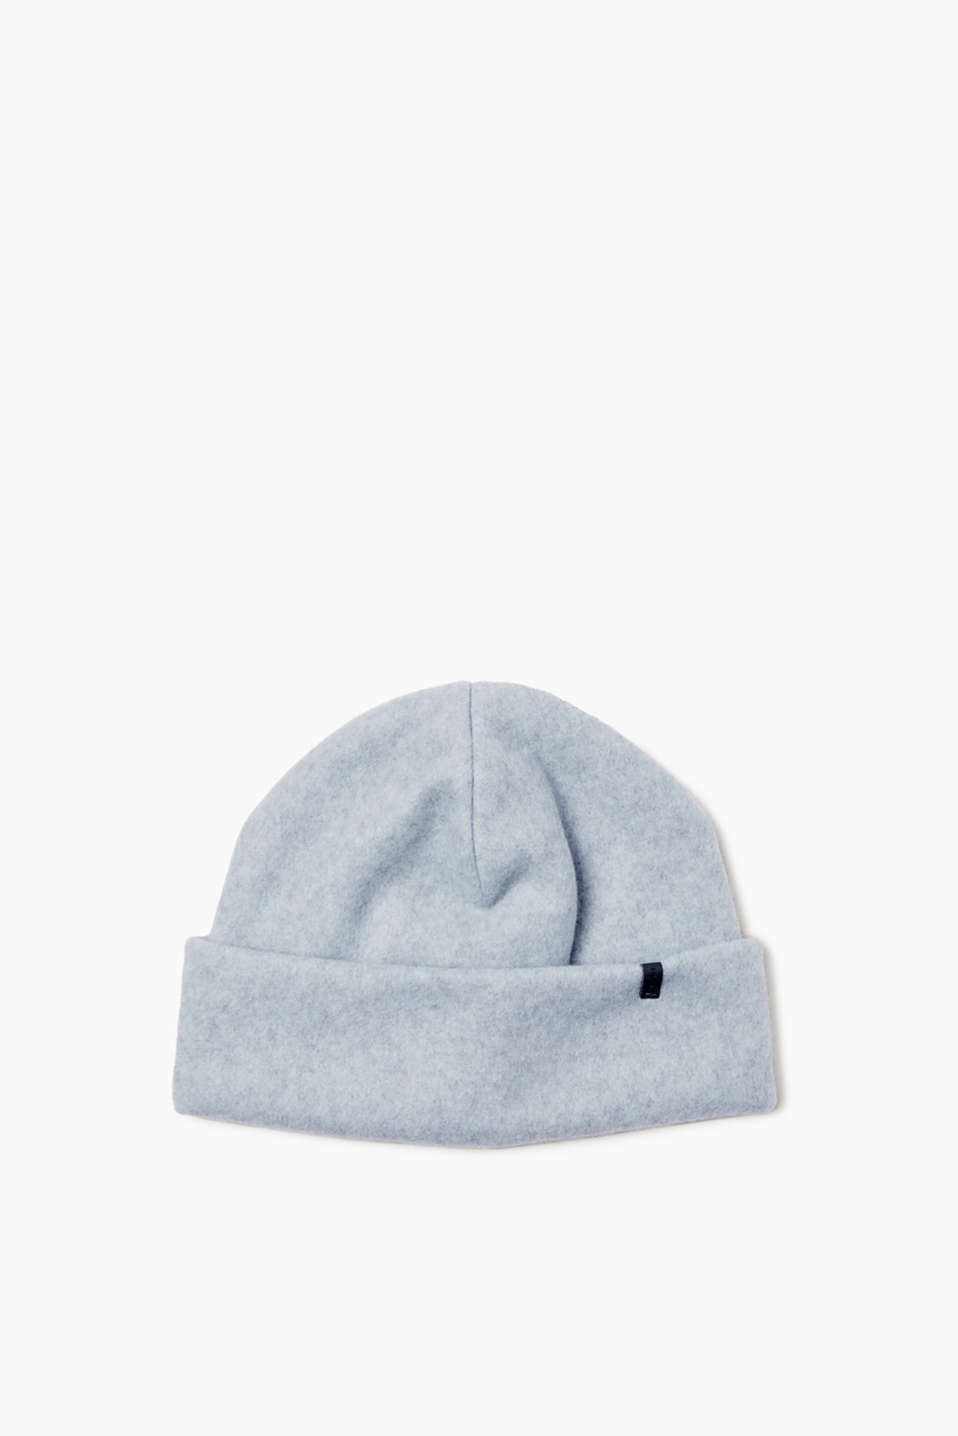 A soft, cosy classic for cold days! This beanie with a large cuff rounds off your outfit nicely